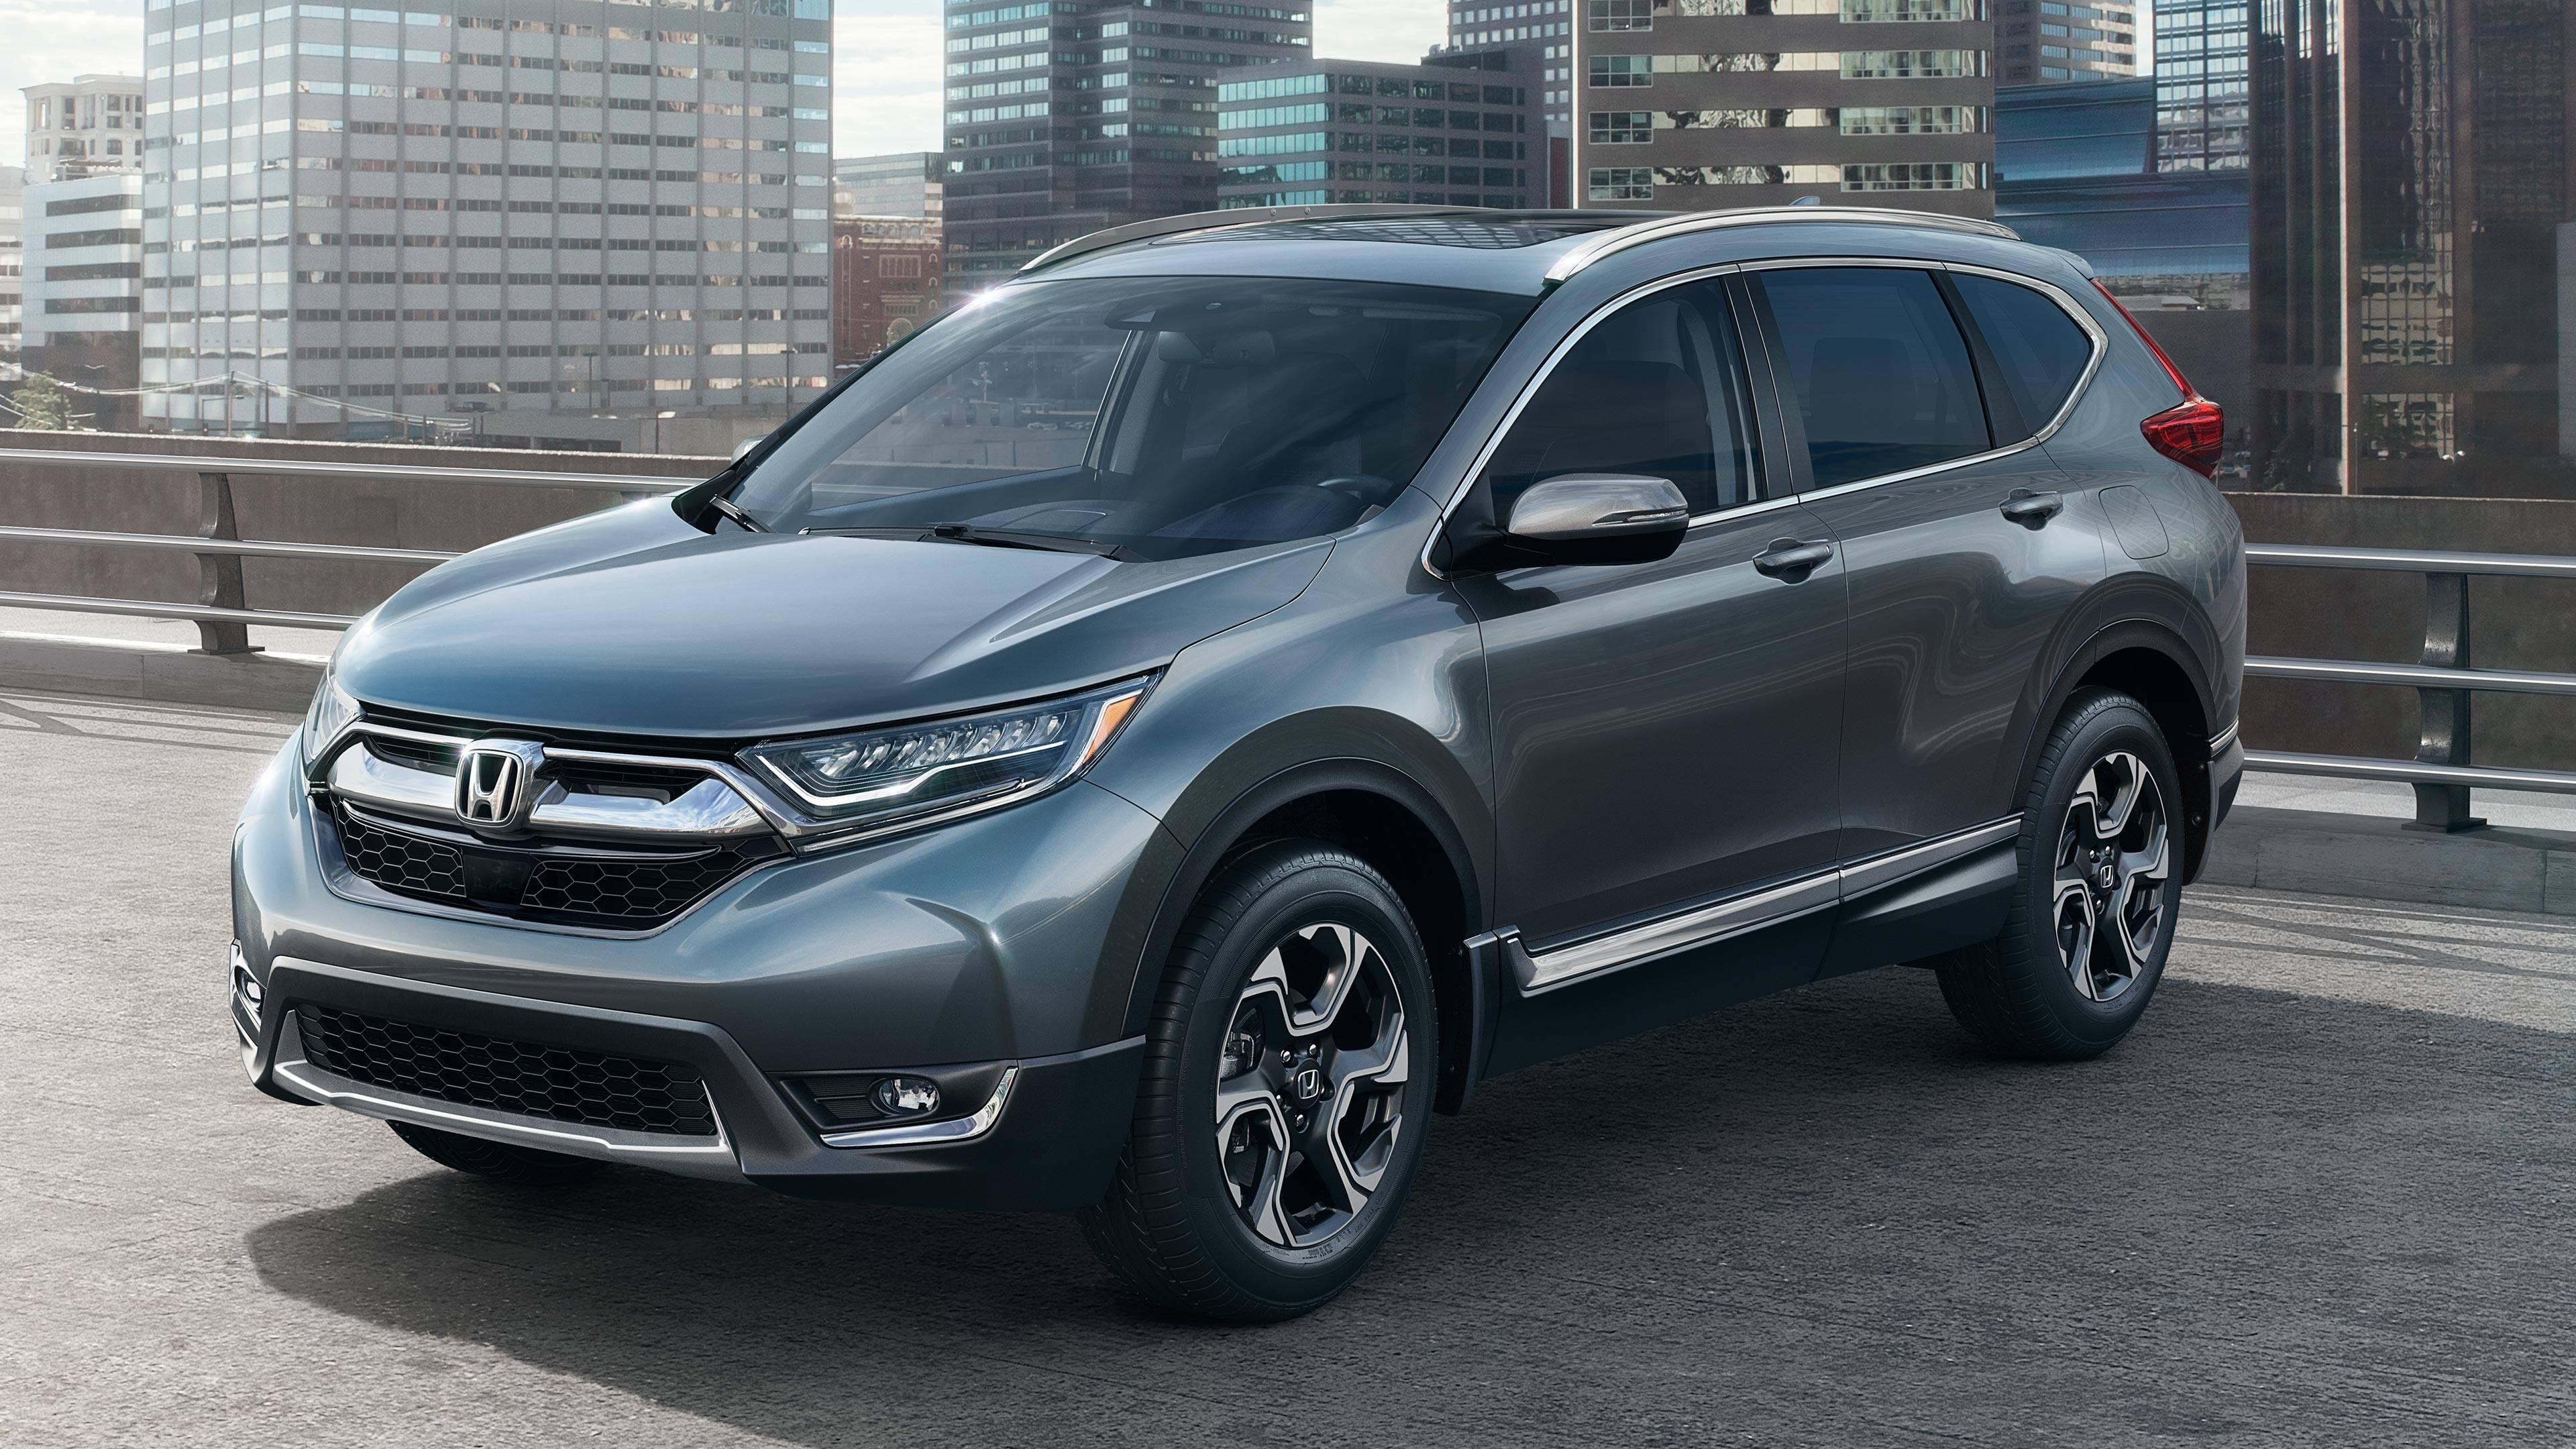 Perfect Pickering Honda Reviews The 2017 CRV Touring  Pickering